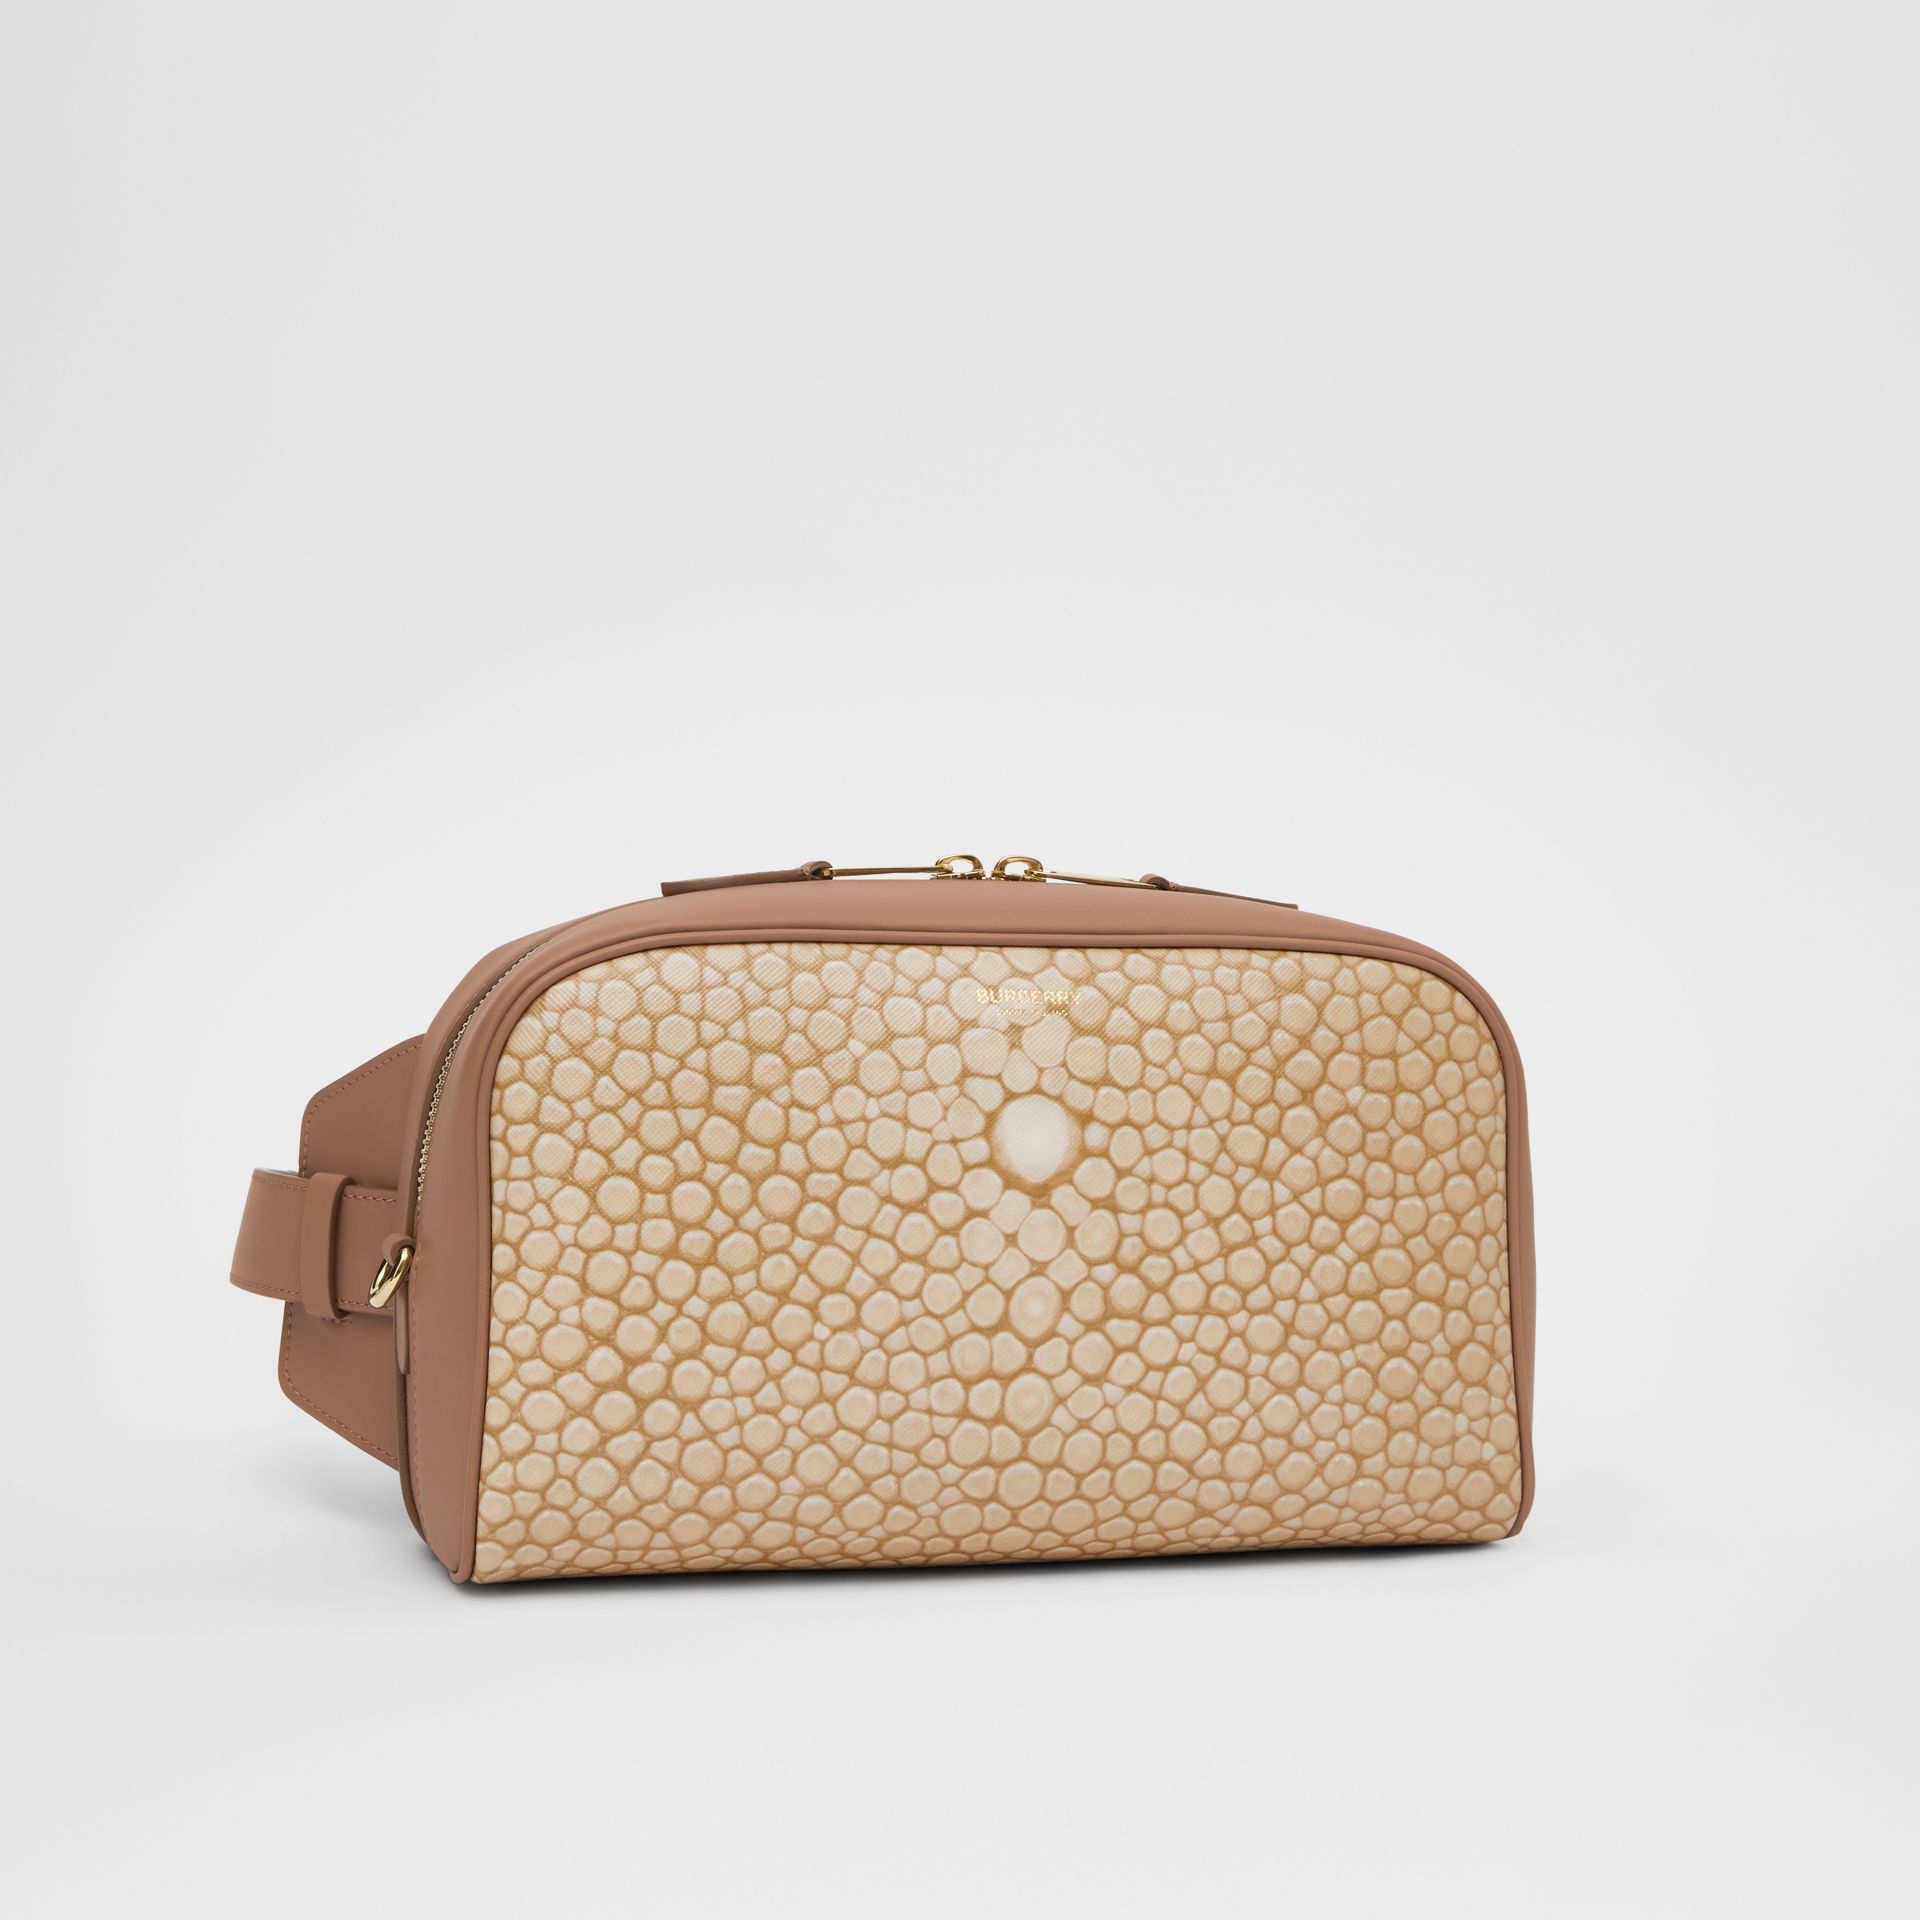 Fish-scale Print and Leather Cube Bum Bag in Light Sand - Women | Burberry Australia - gallery image 4